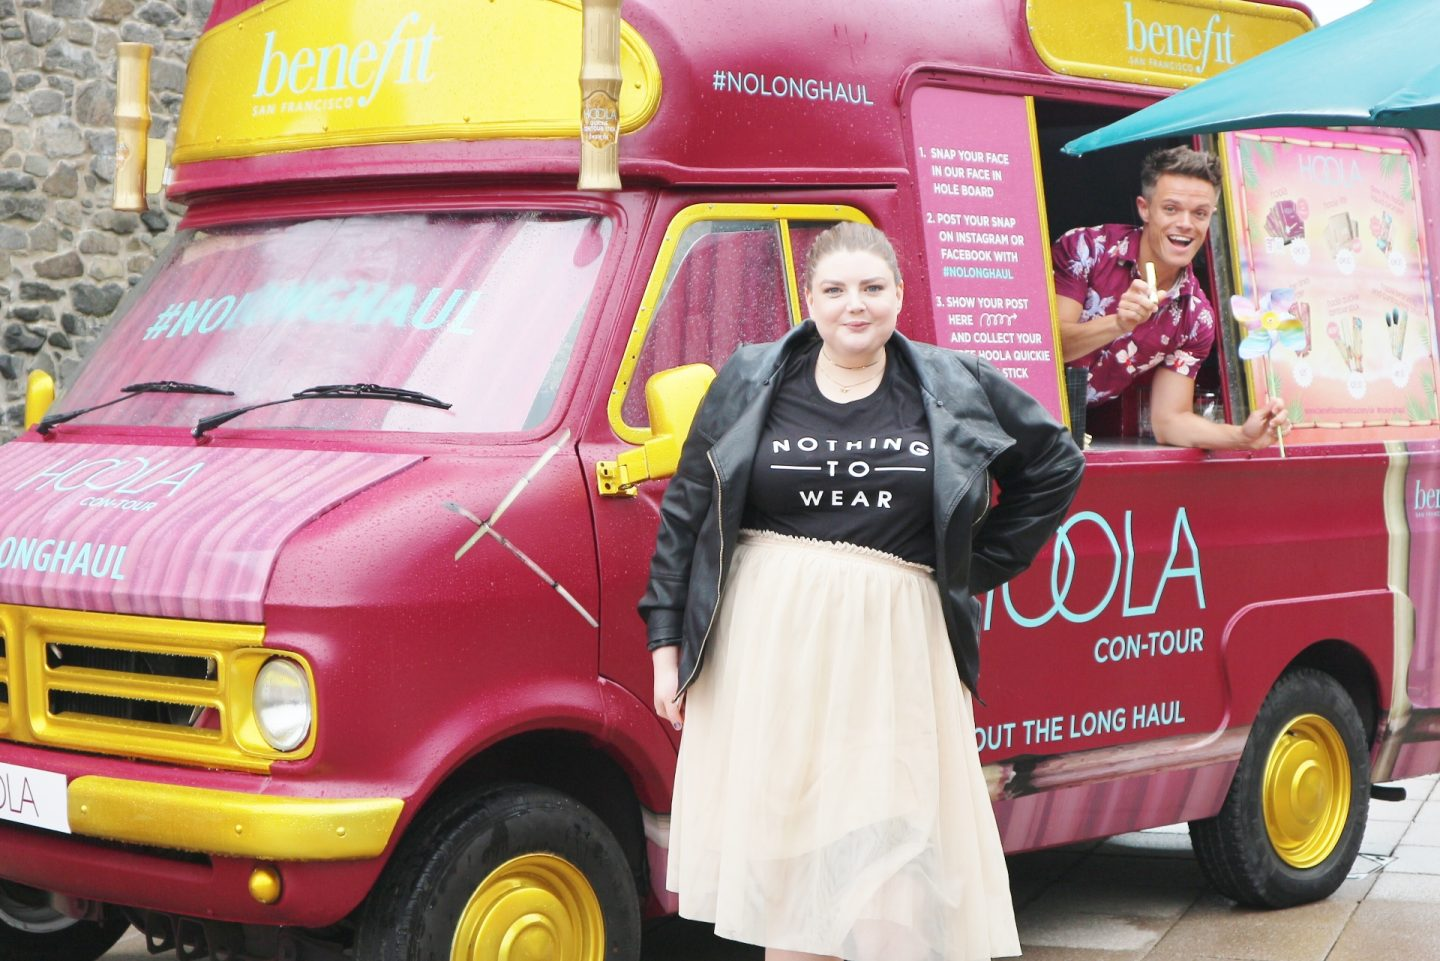 laura pearson-smith at benefit hoola con-tour van